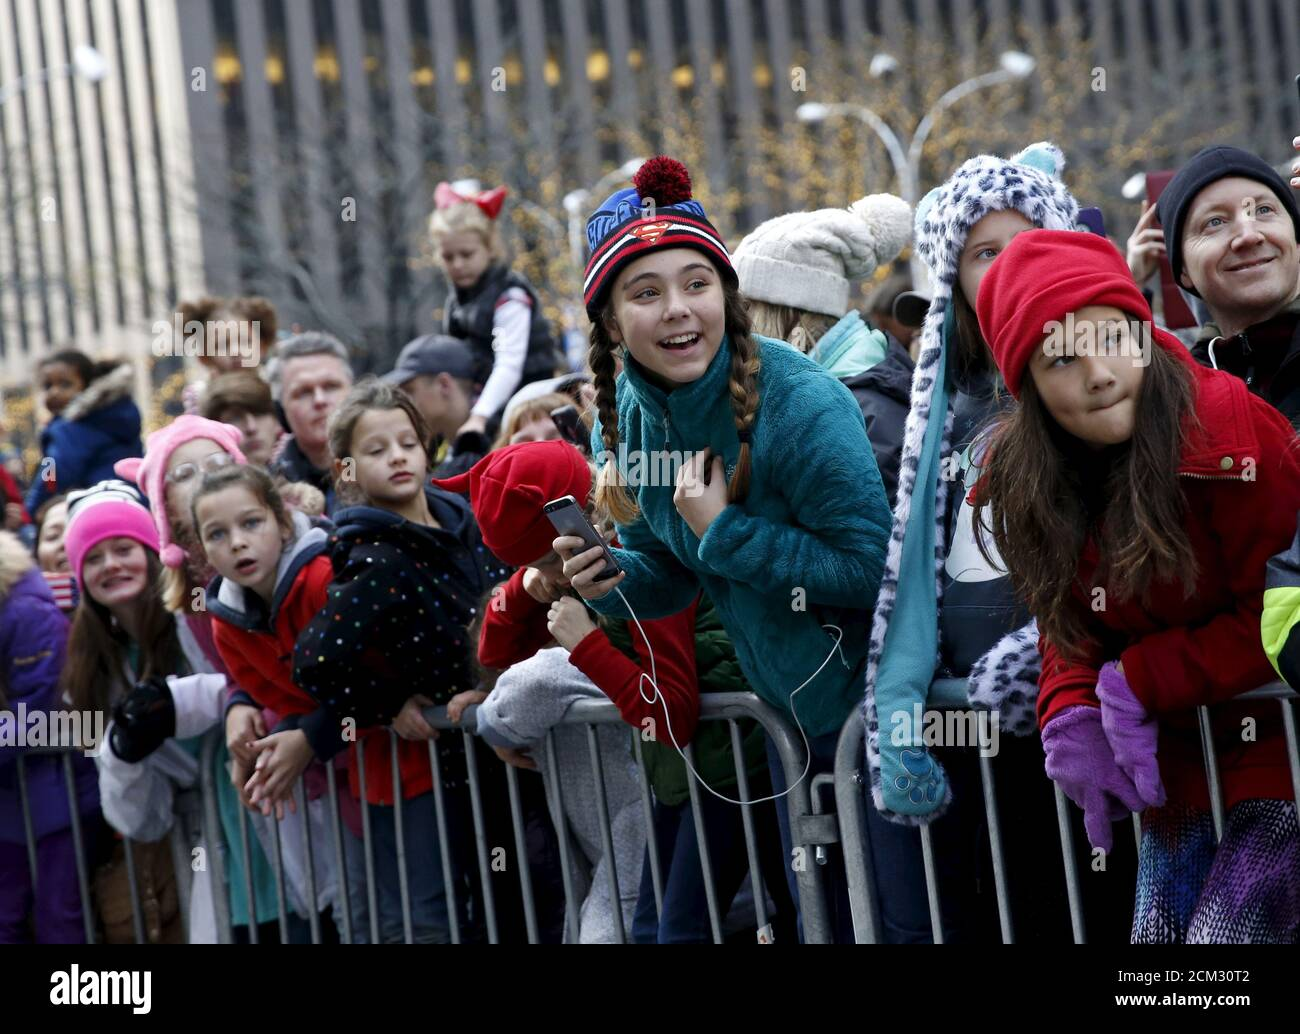 People watch floats make their way down 6th avenue during the 89th Macy's Thanksgiving Day Parade in the Manhattan borough of New York, November 26, 2015. REUTERS/Shannon Stapleton Stock Photo